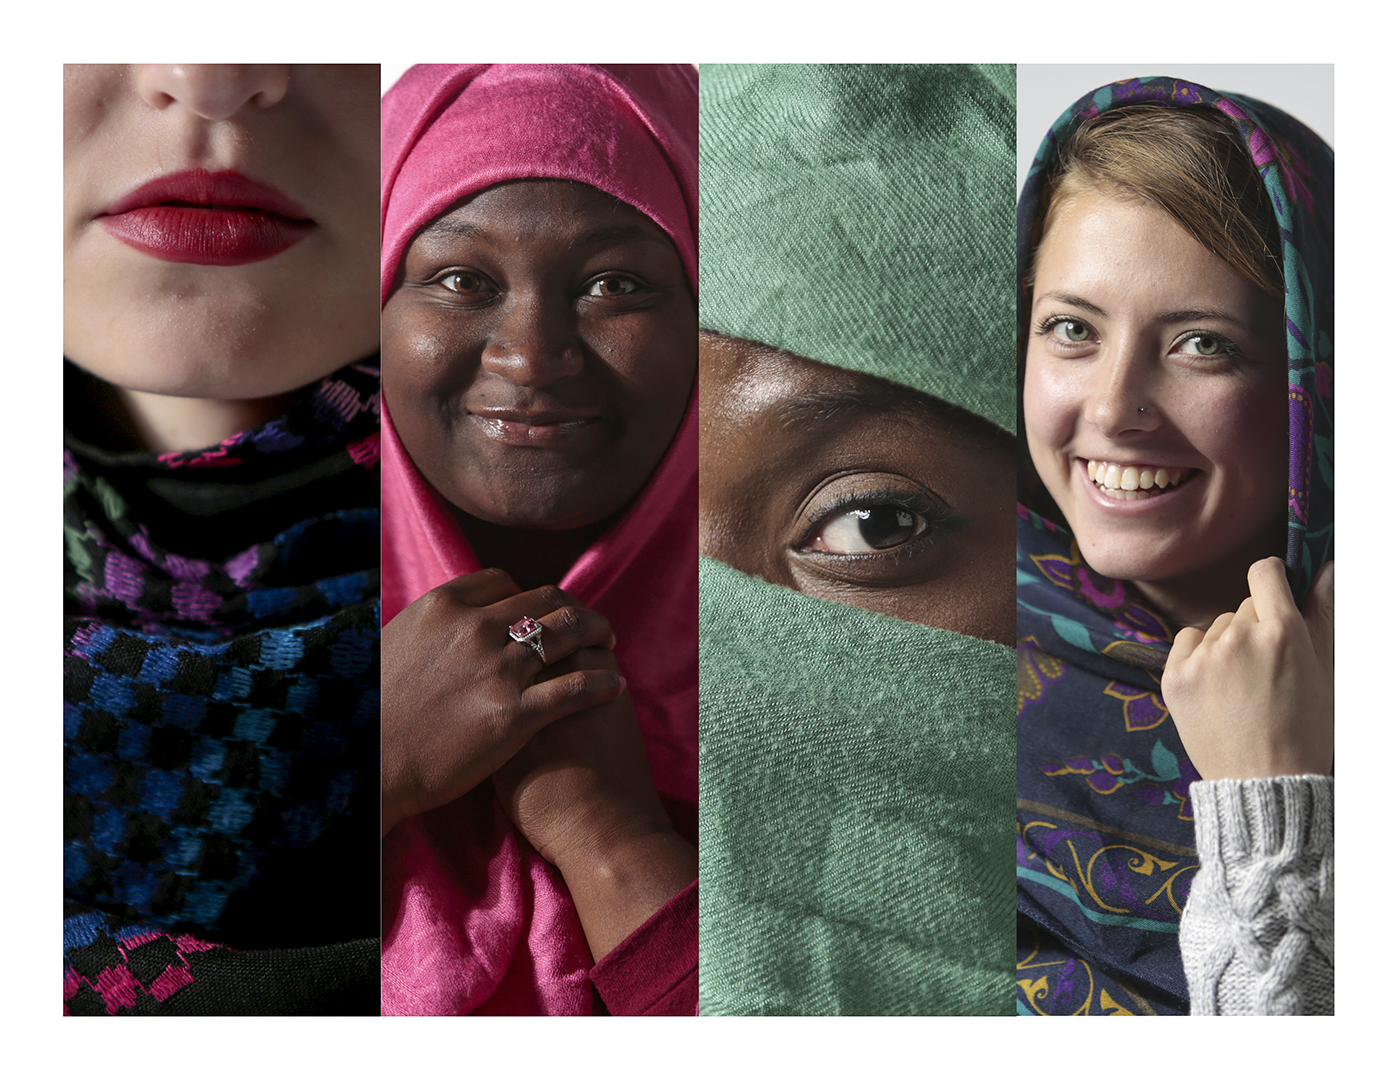 WKU+students+try+on+hijabs.+The+ESLI+and+ICSR+will+host+events+beginning+tonight+to+discuss+womens+cultural+dress%2C+including+an+opportunity+to+try+wearing+hijab+for+a+day.